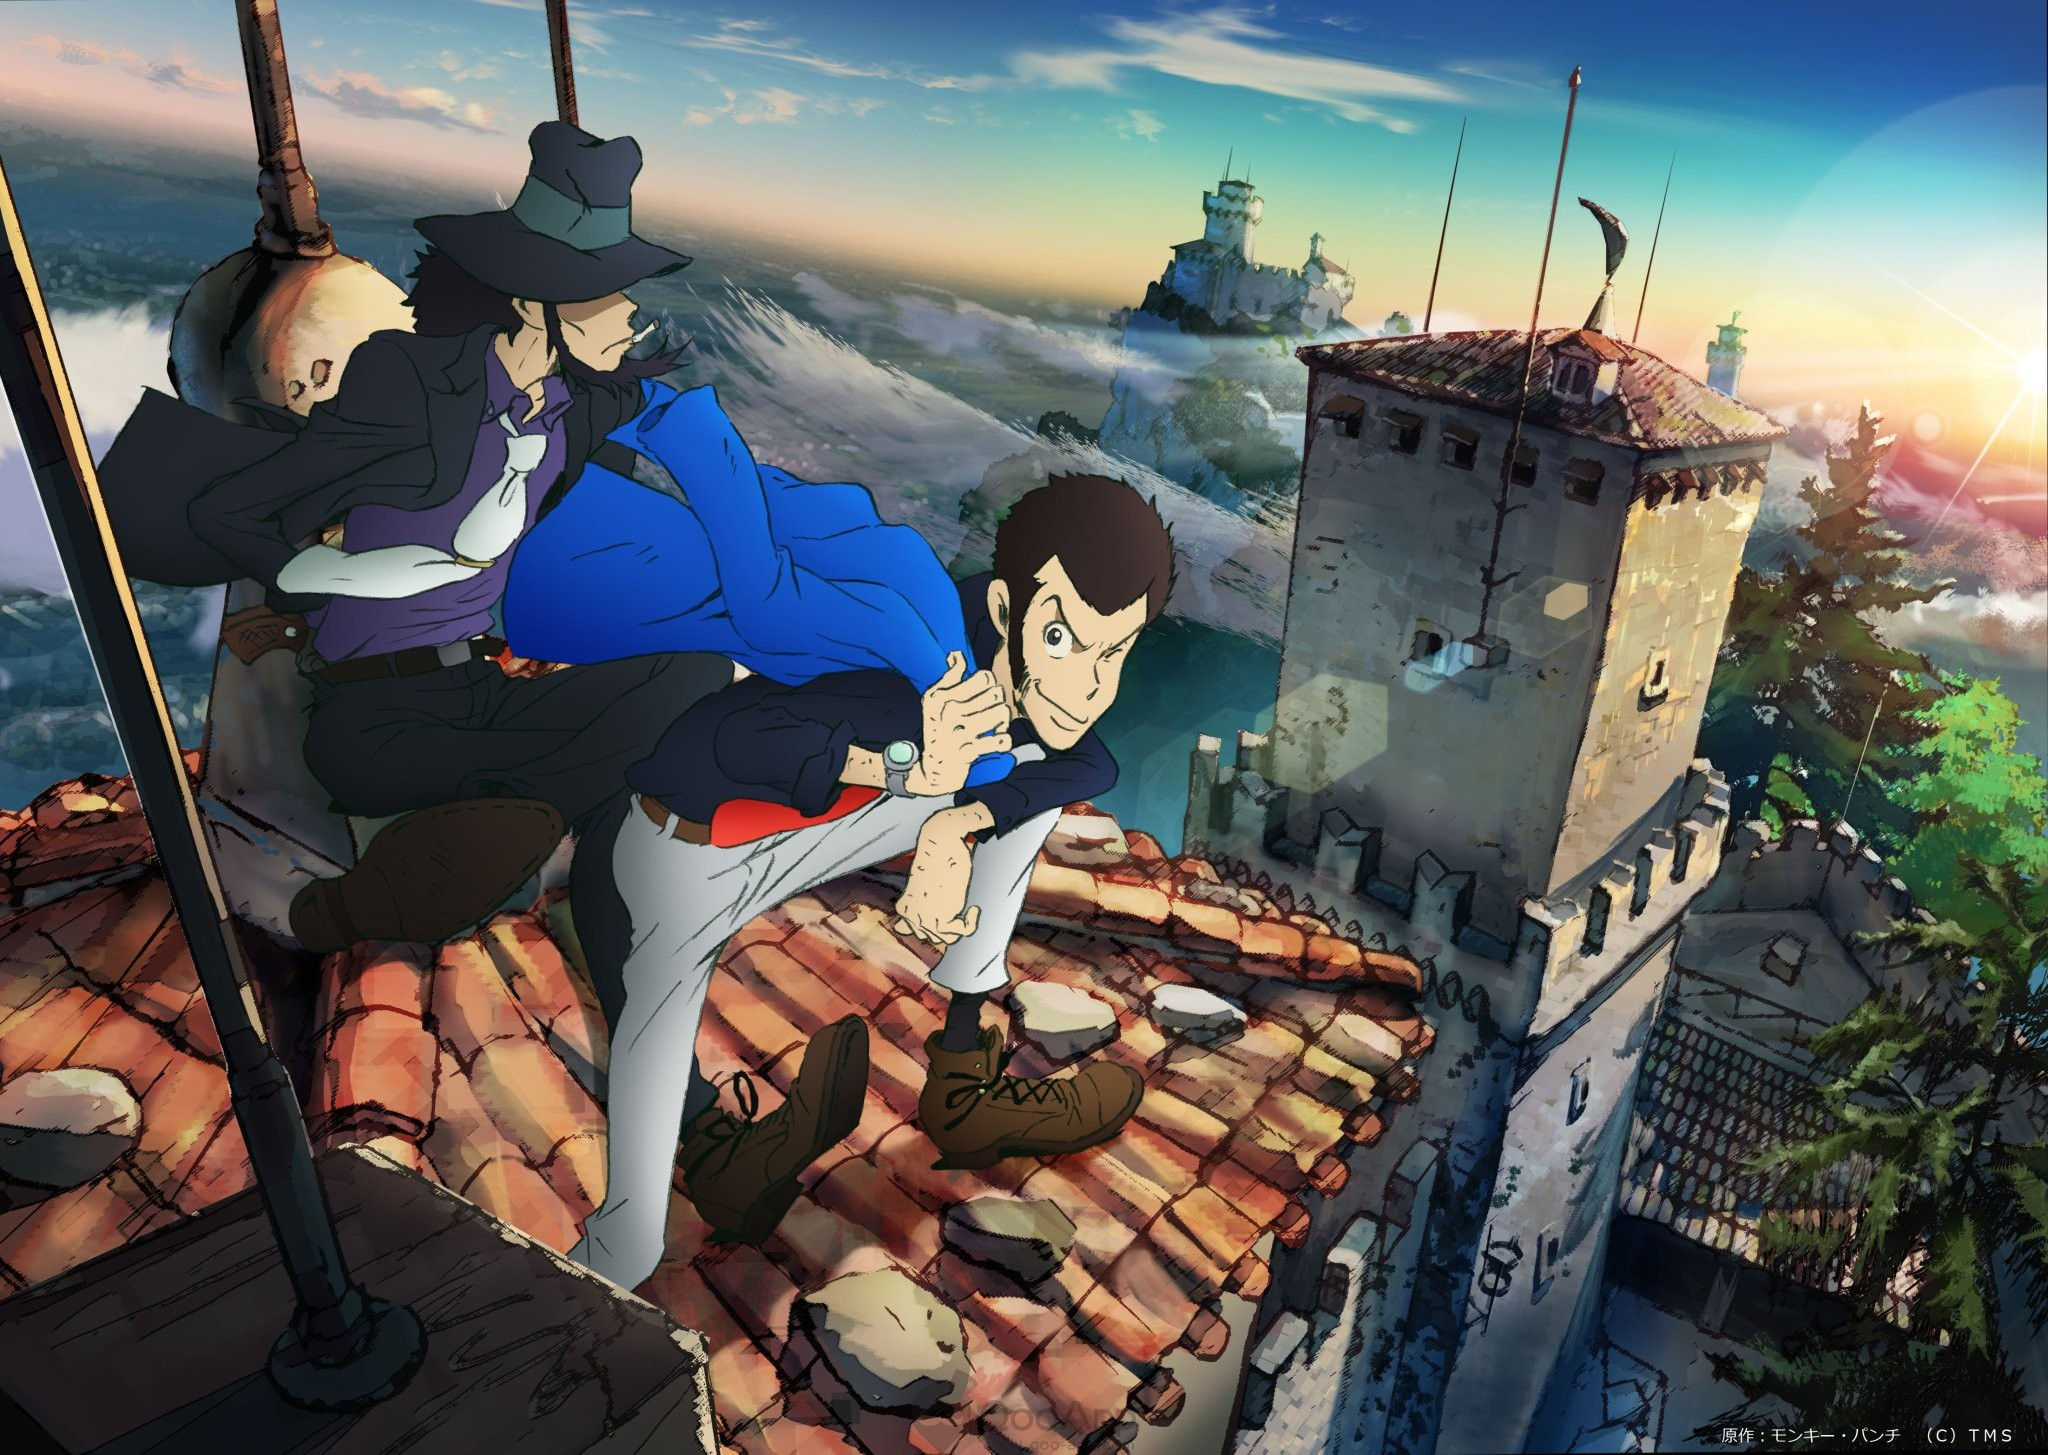 Tribute Paid to Lupin III Manga Author Monkey Punch